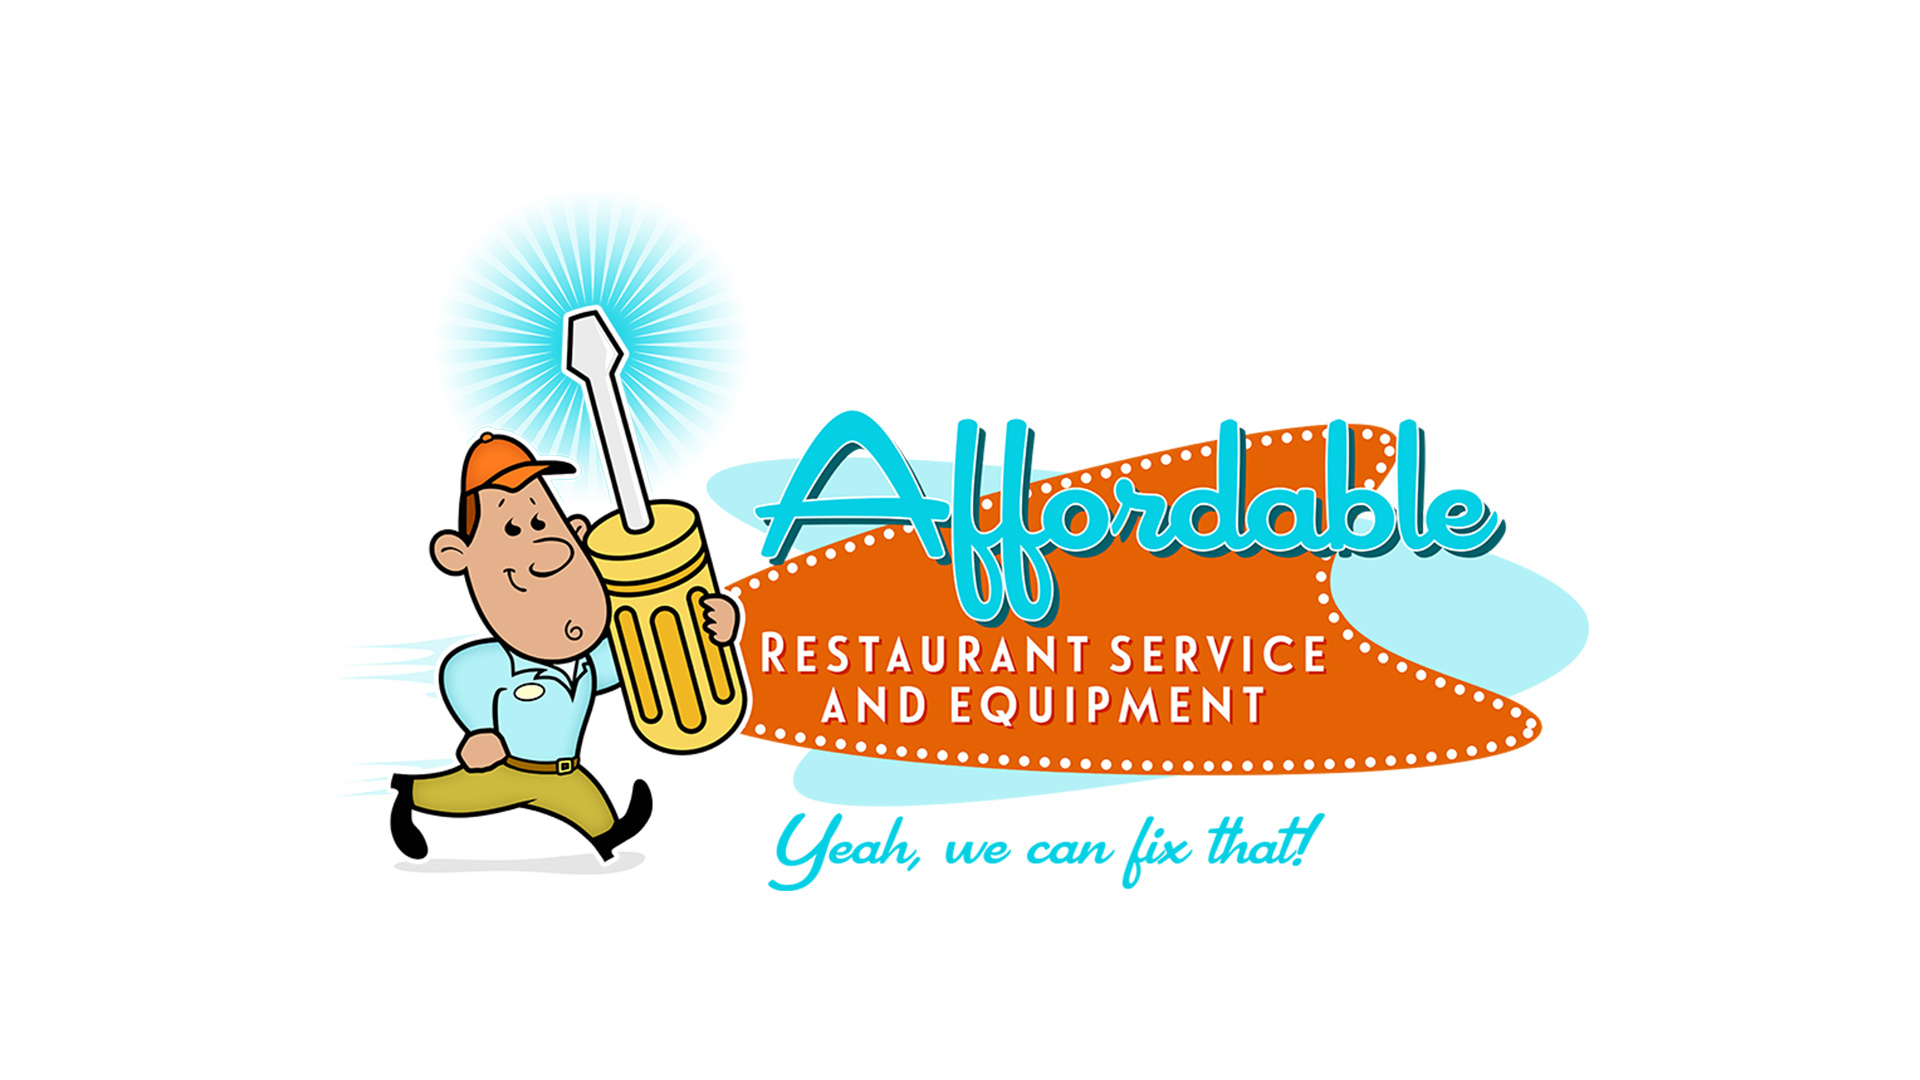 Affordable-Restaurant-Service-and-Equipment.jpg